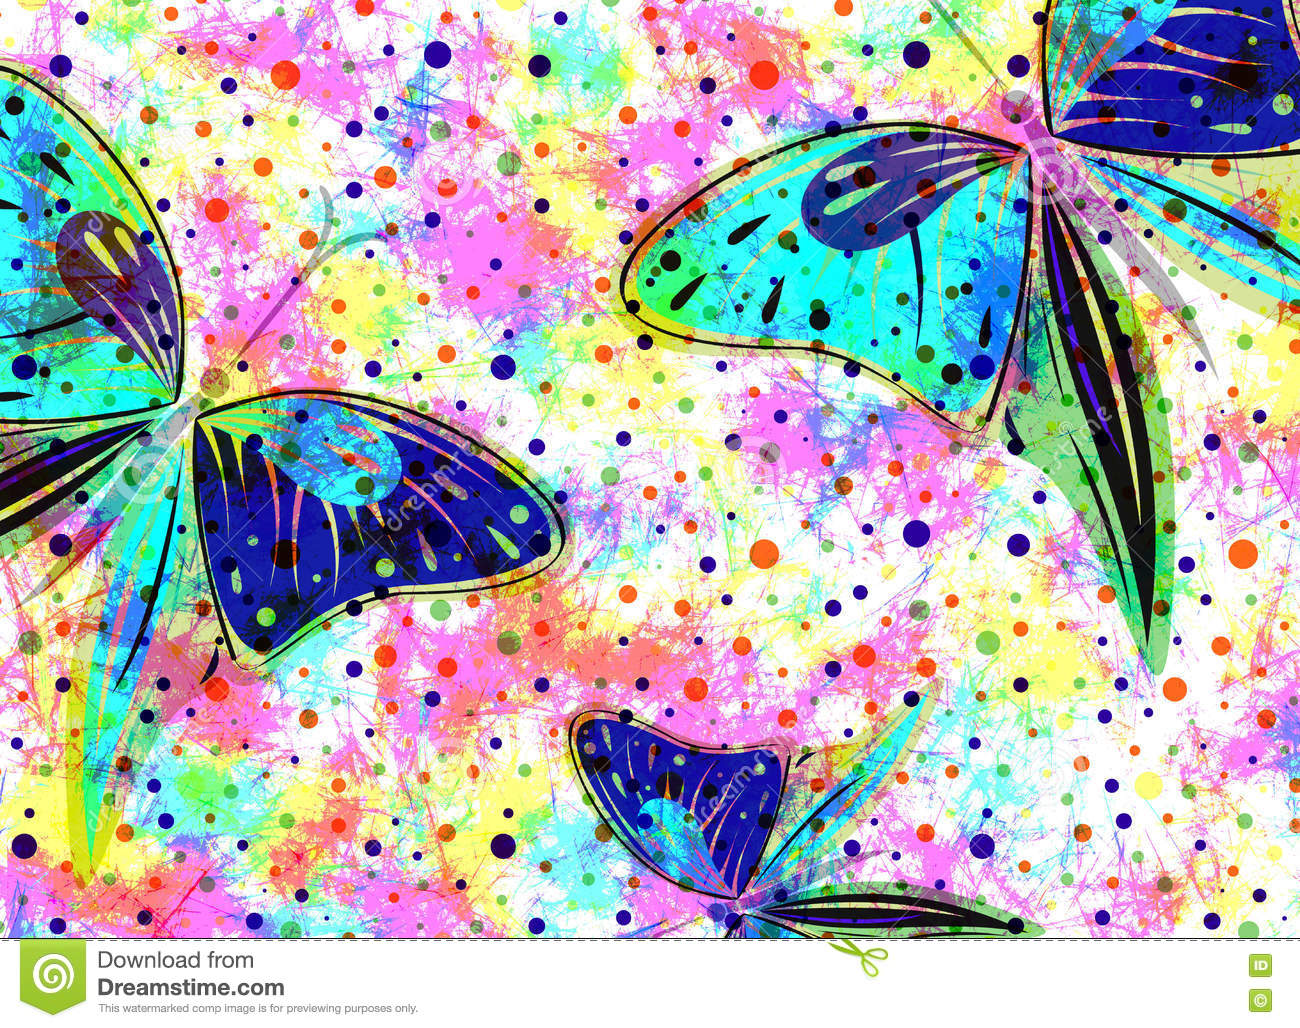 Most Inspiring Wallpaper Butterfly Hand - hand-drawn-textured-artistic-background-insect-creative-wallpaper-butterflies-rainbow-colors-decorative-watercolor-73364493  Photograph_239642.jpg